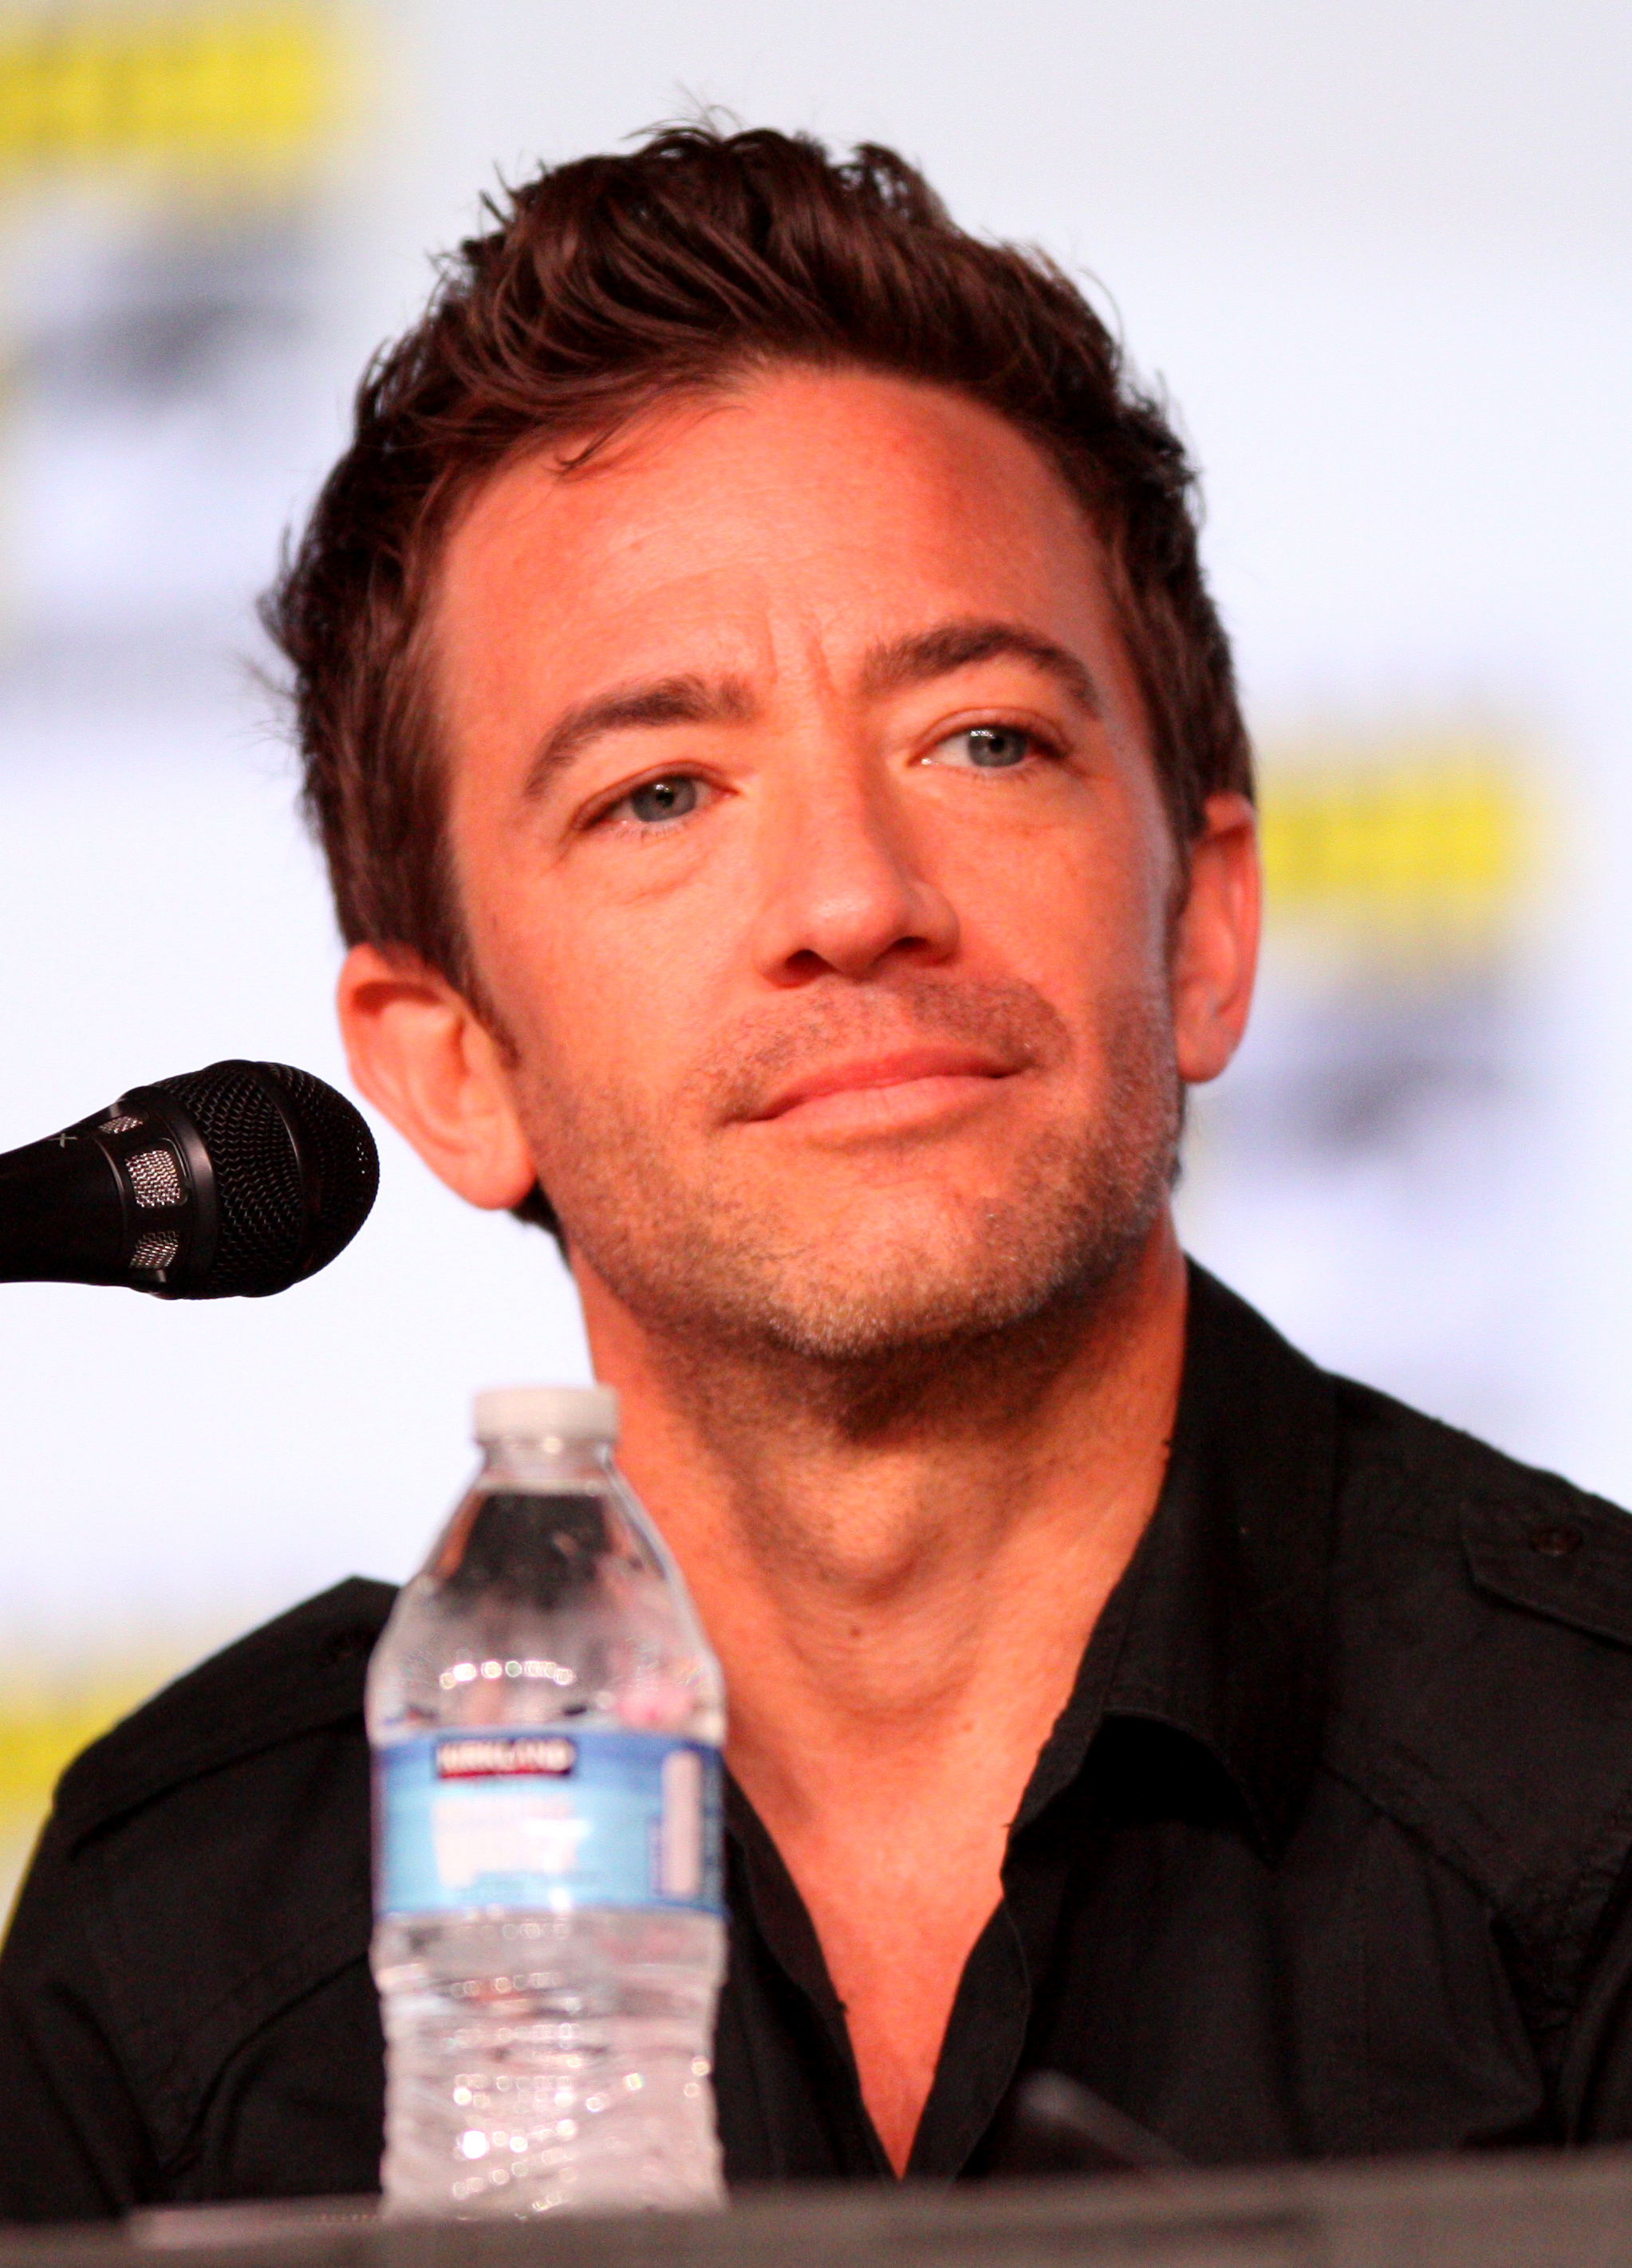 The 43-year old son of father Roger Faustino and mother Kay Freeman, 160 cm tall David Faustino in 2018 photo